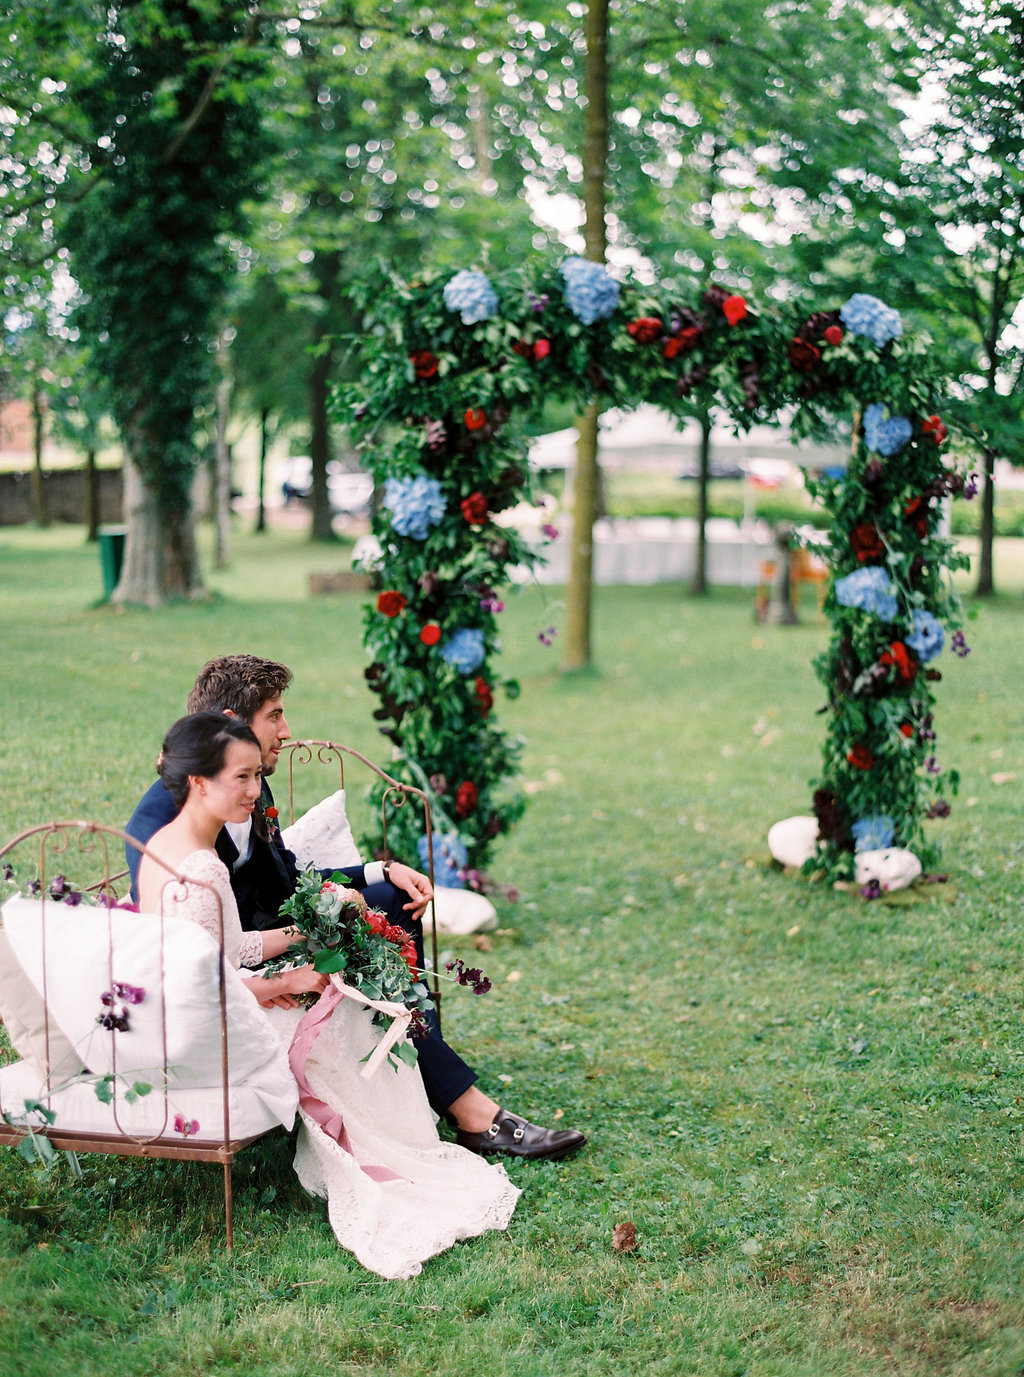 chateau_wedding_elsasebastien-189